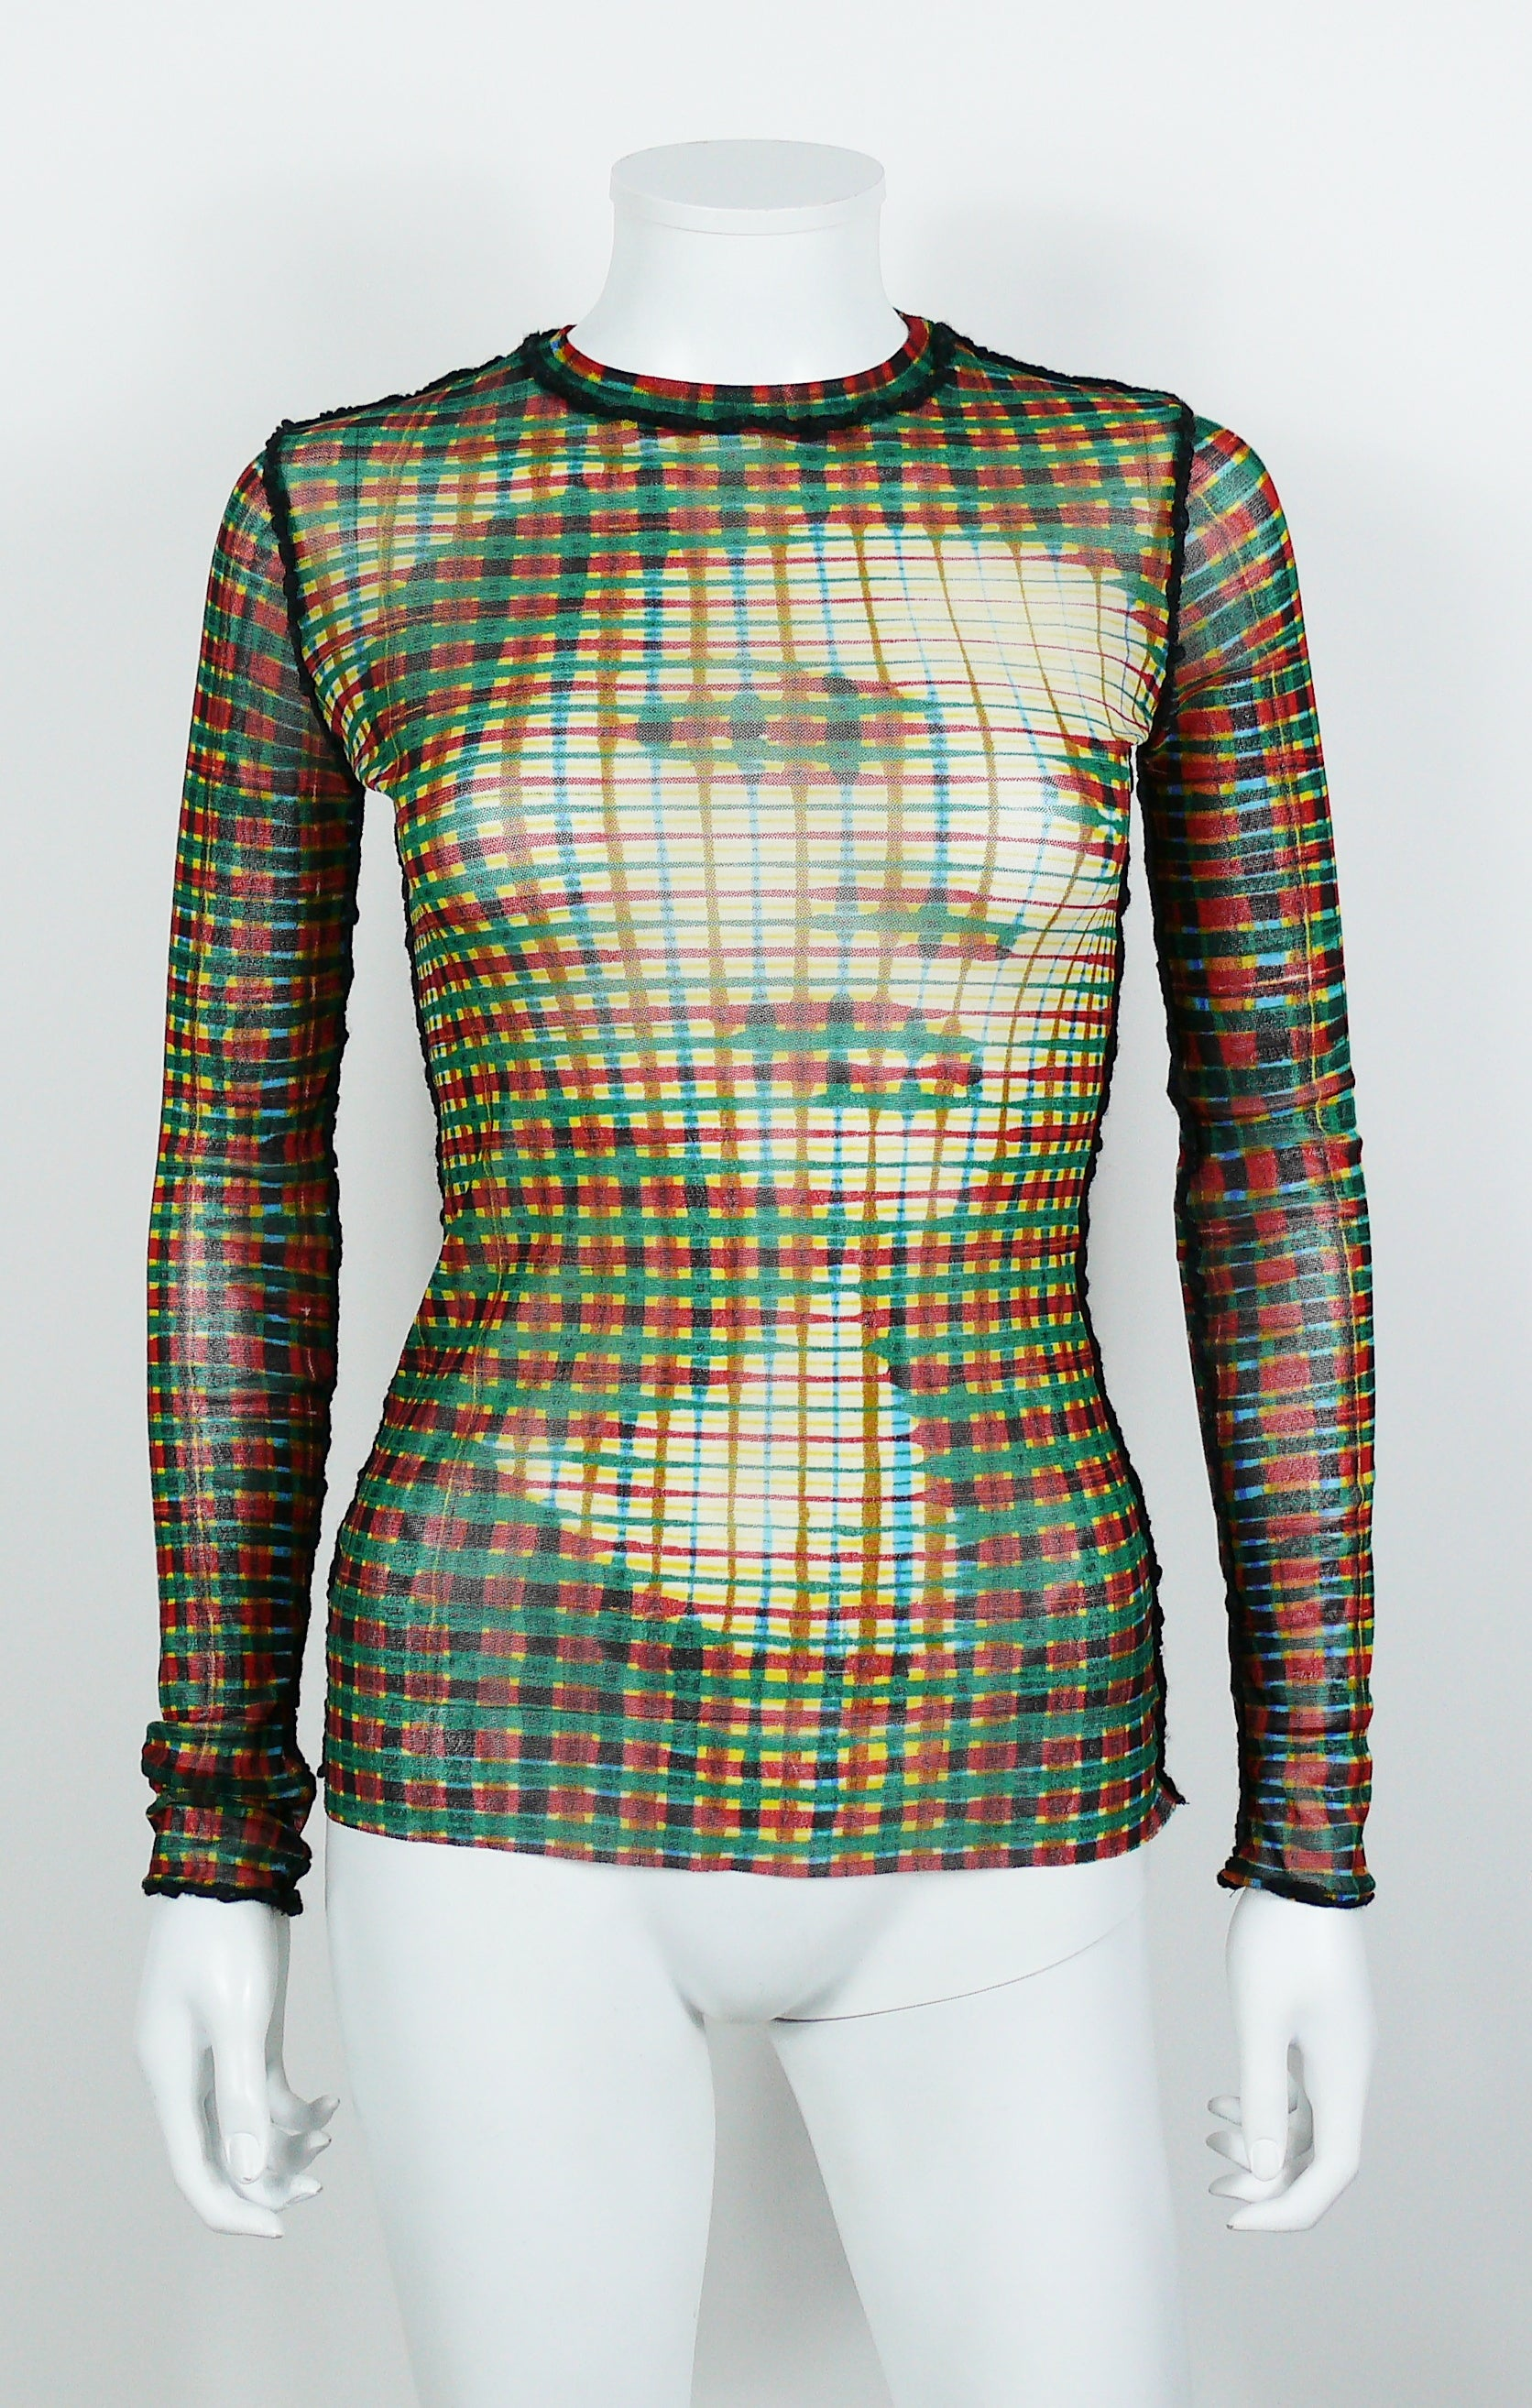 Jean paul gaultier vintage optical illusion profile sheer mesh top for sale at 1stdibs